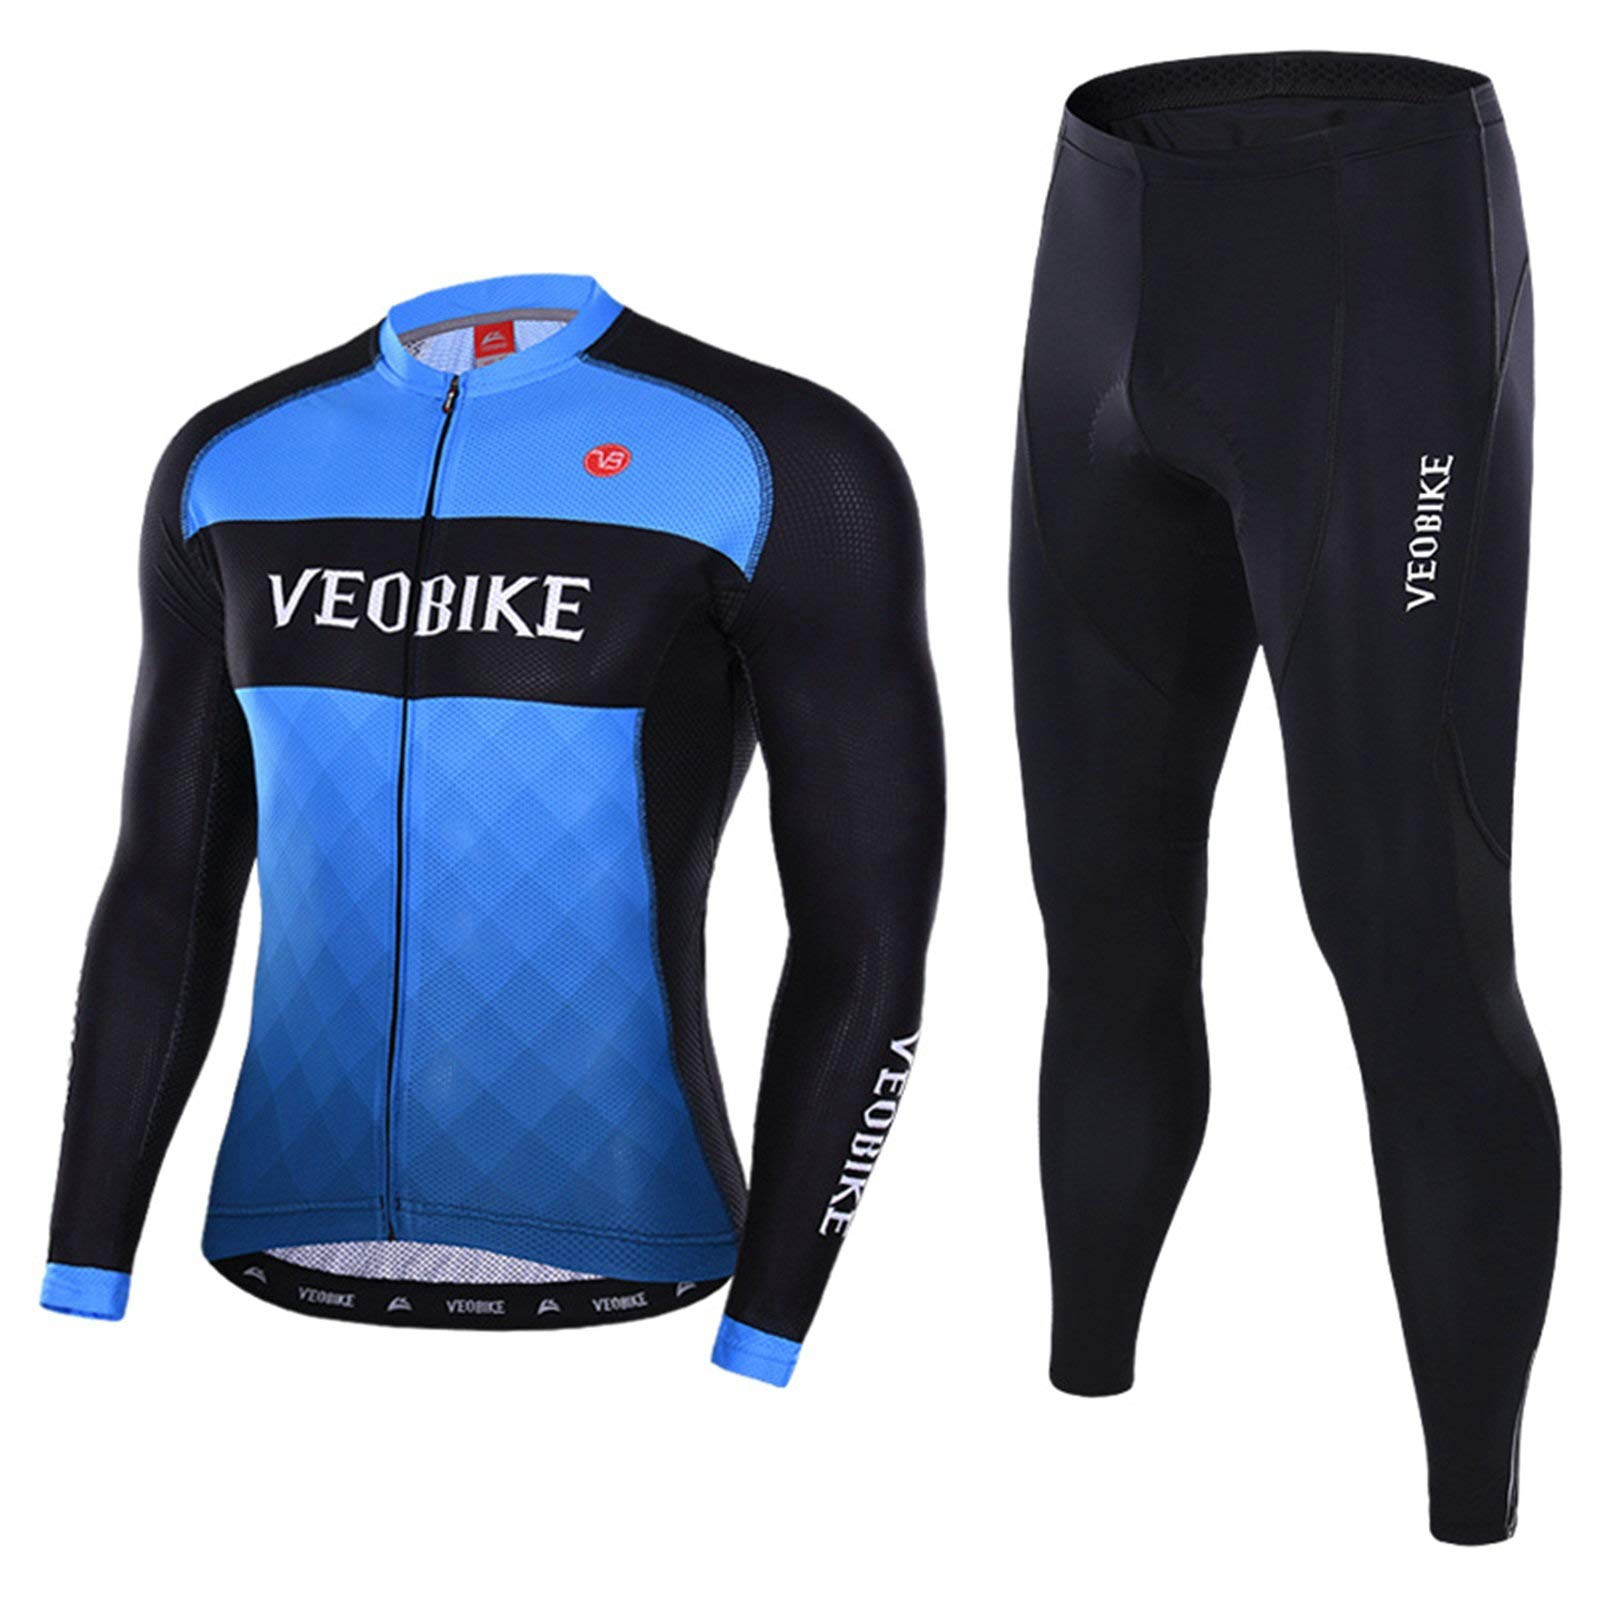 Aooaz Men's Cycling Clothes Suit Long Sleeve Mountain Bike Shirt Tights Biking Outfit Size M Blue